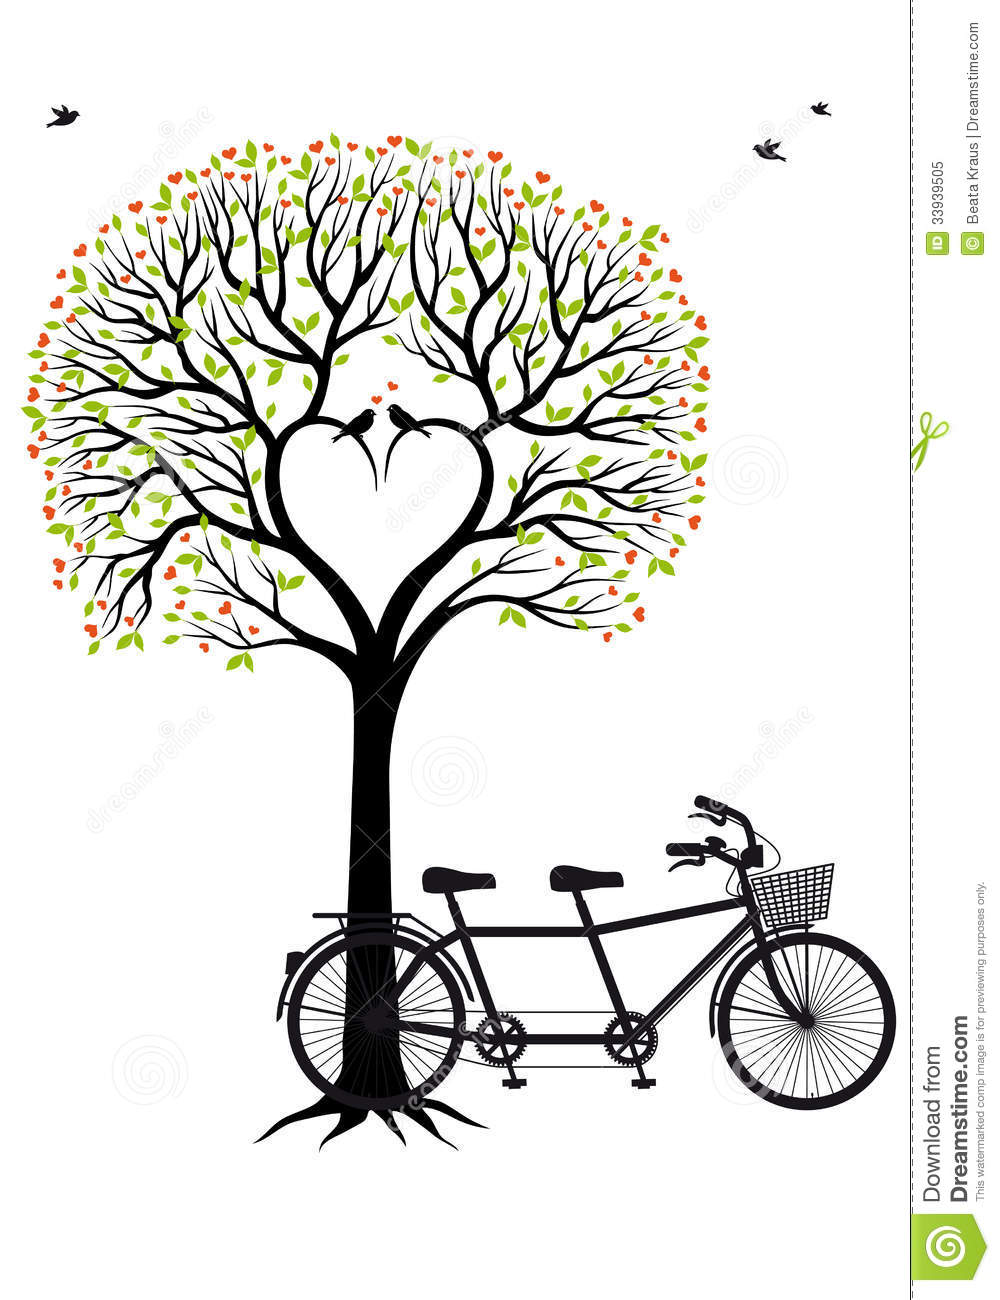 Heart tree with birds and bicycle, vector